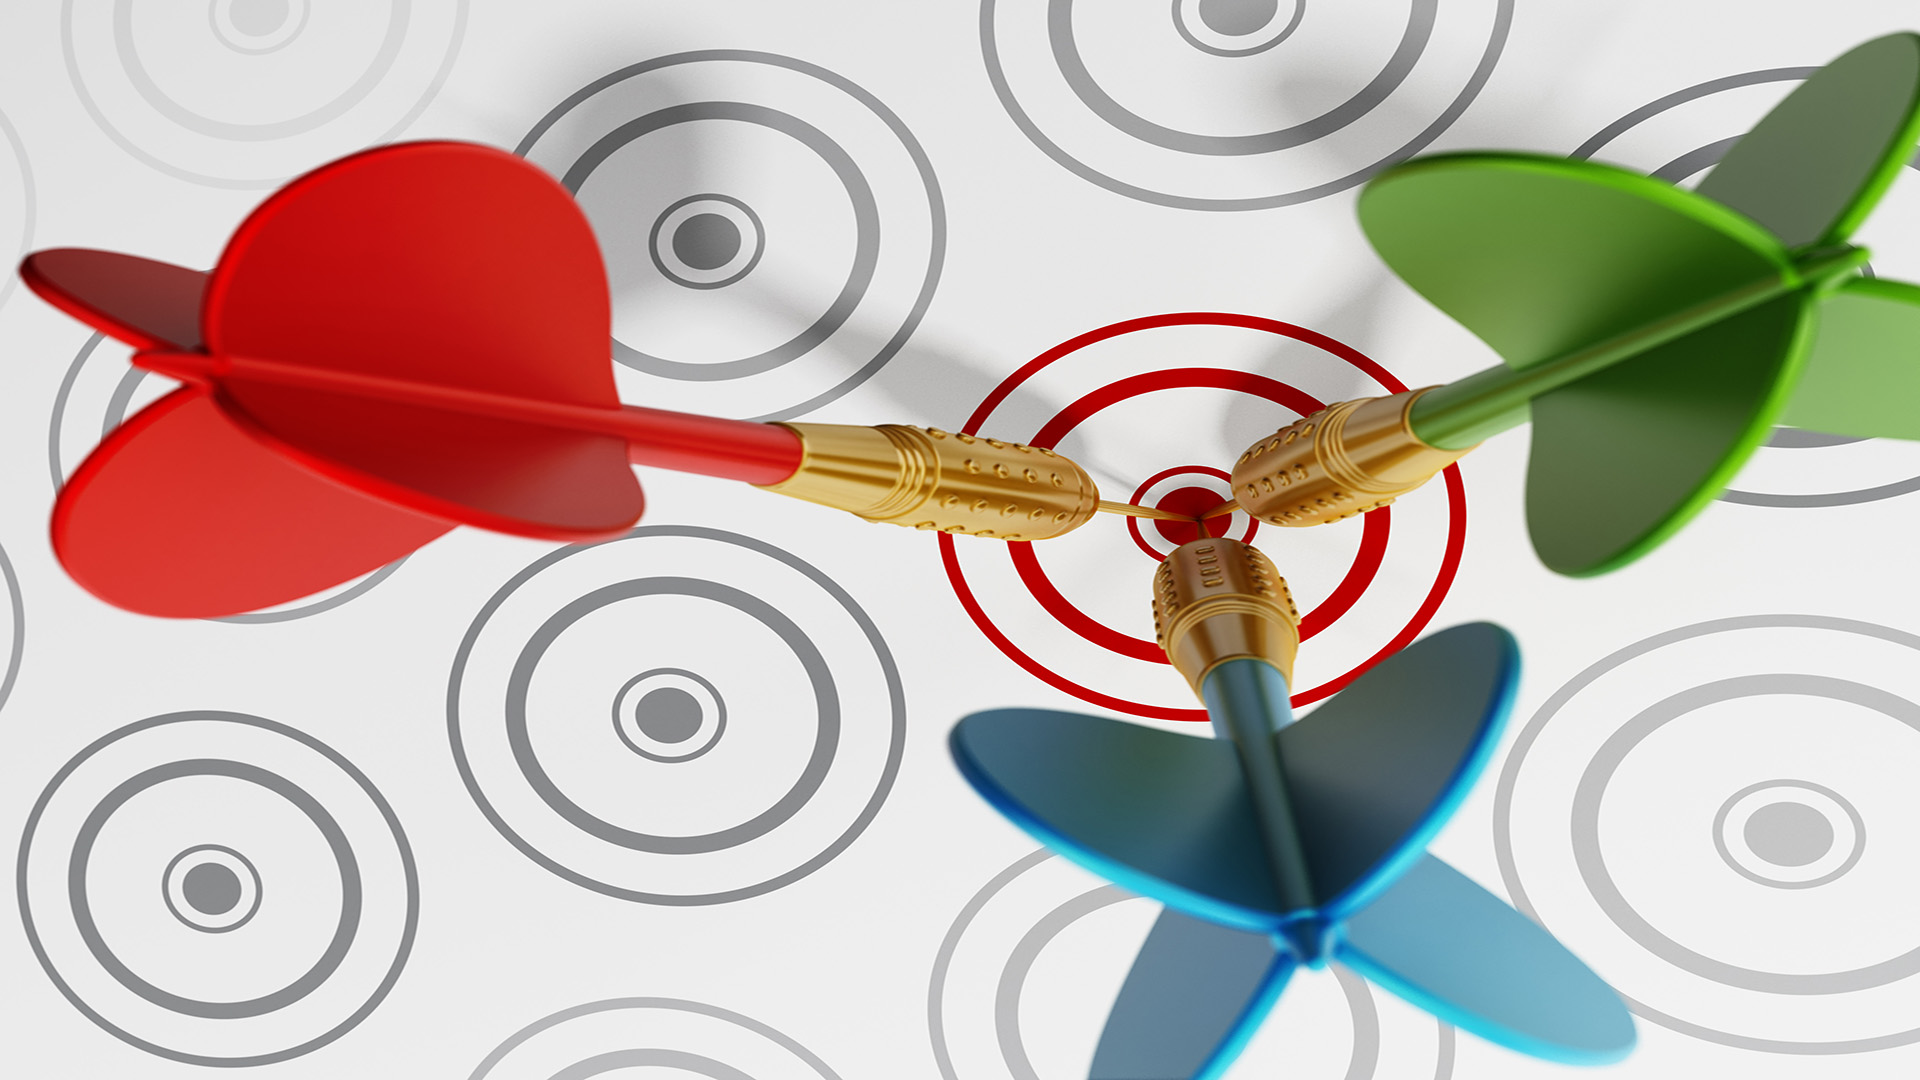 display-retargeting-bullseye-ss-1920